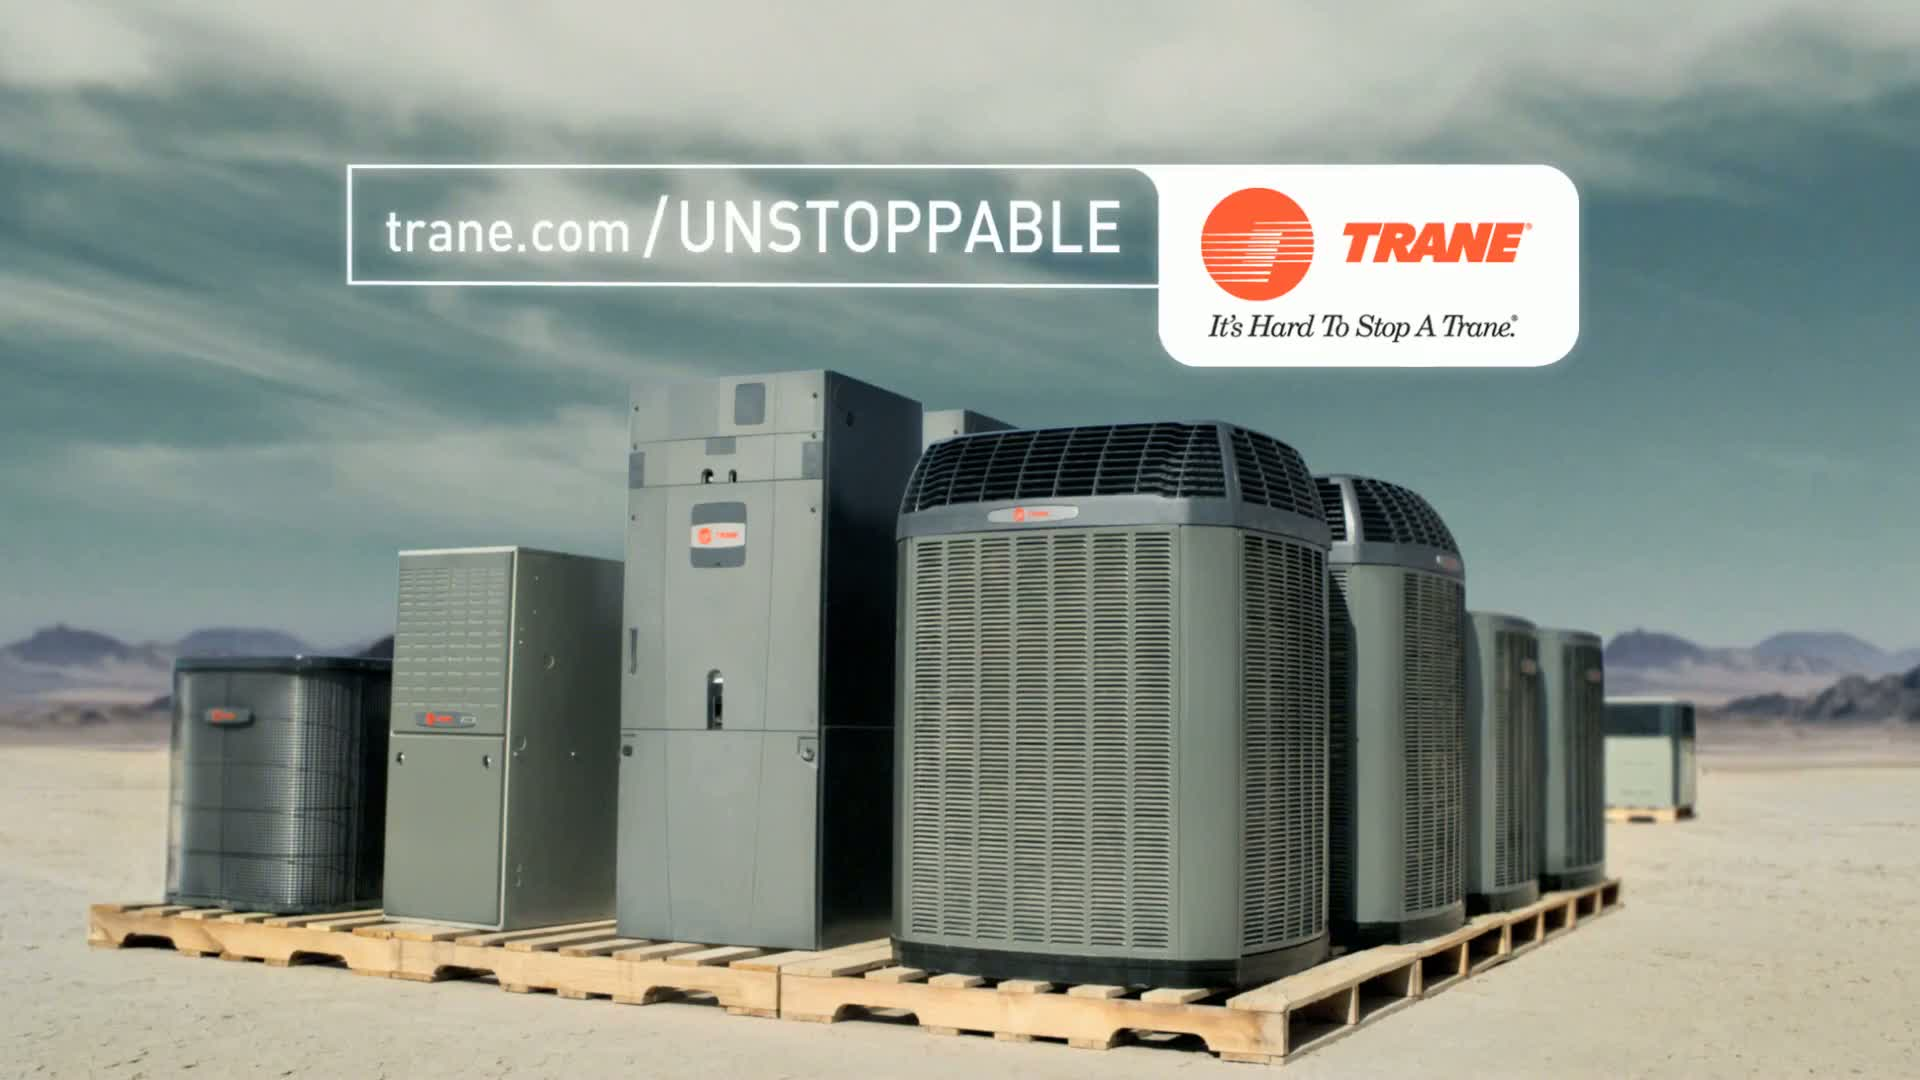 H.O. Services partners with Trane for the ultimate in heating, air ...